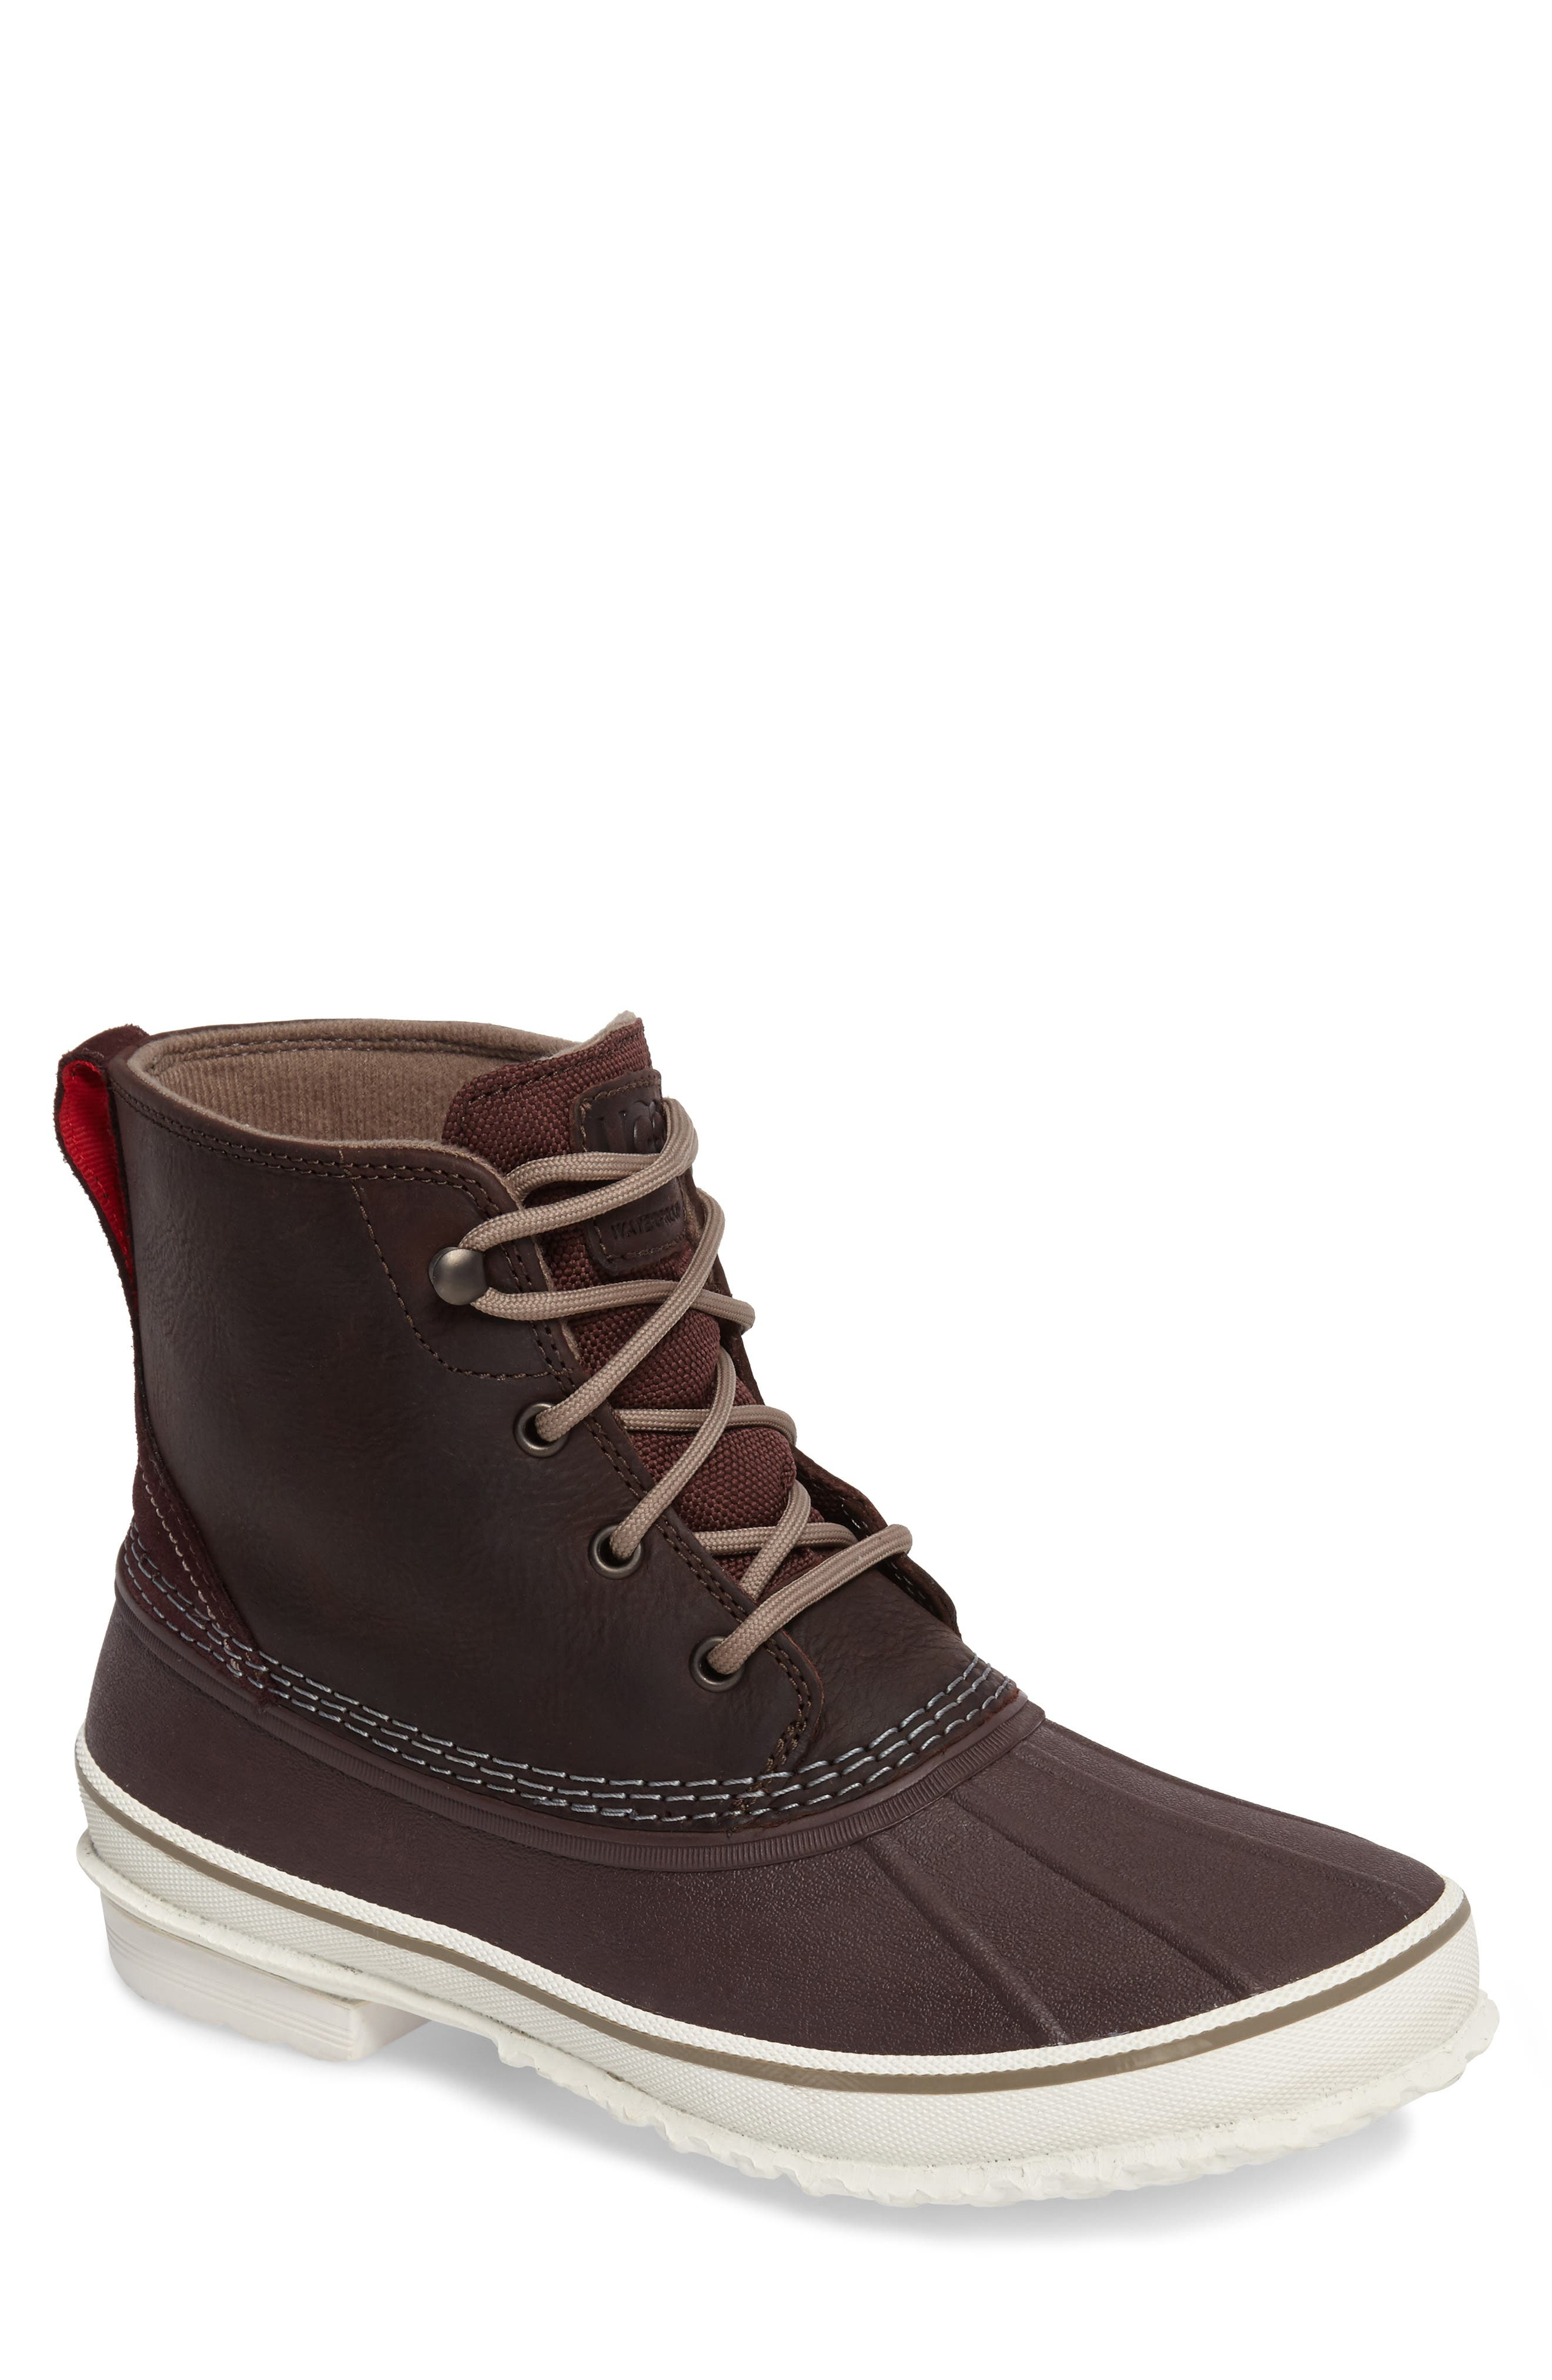 Men S Cold Weather Shoes Nordstrom